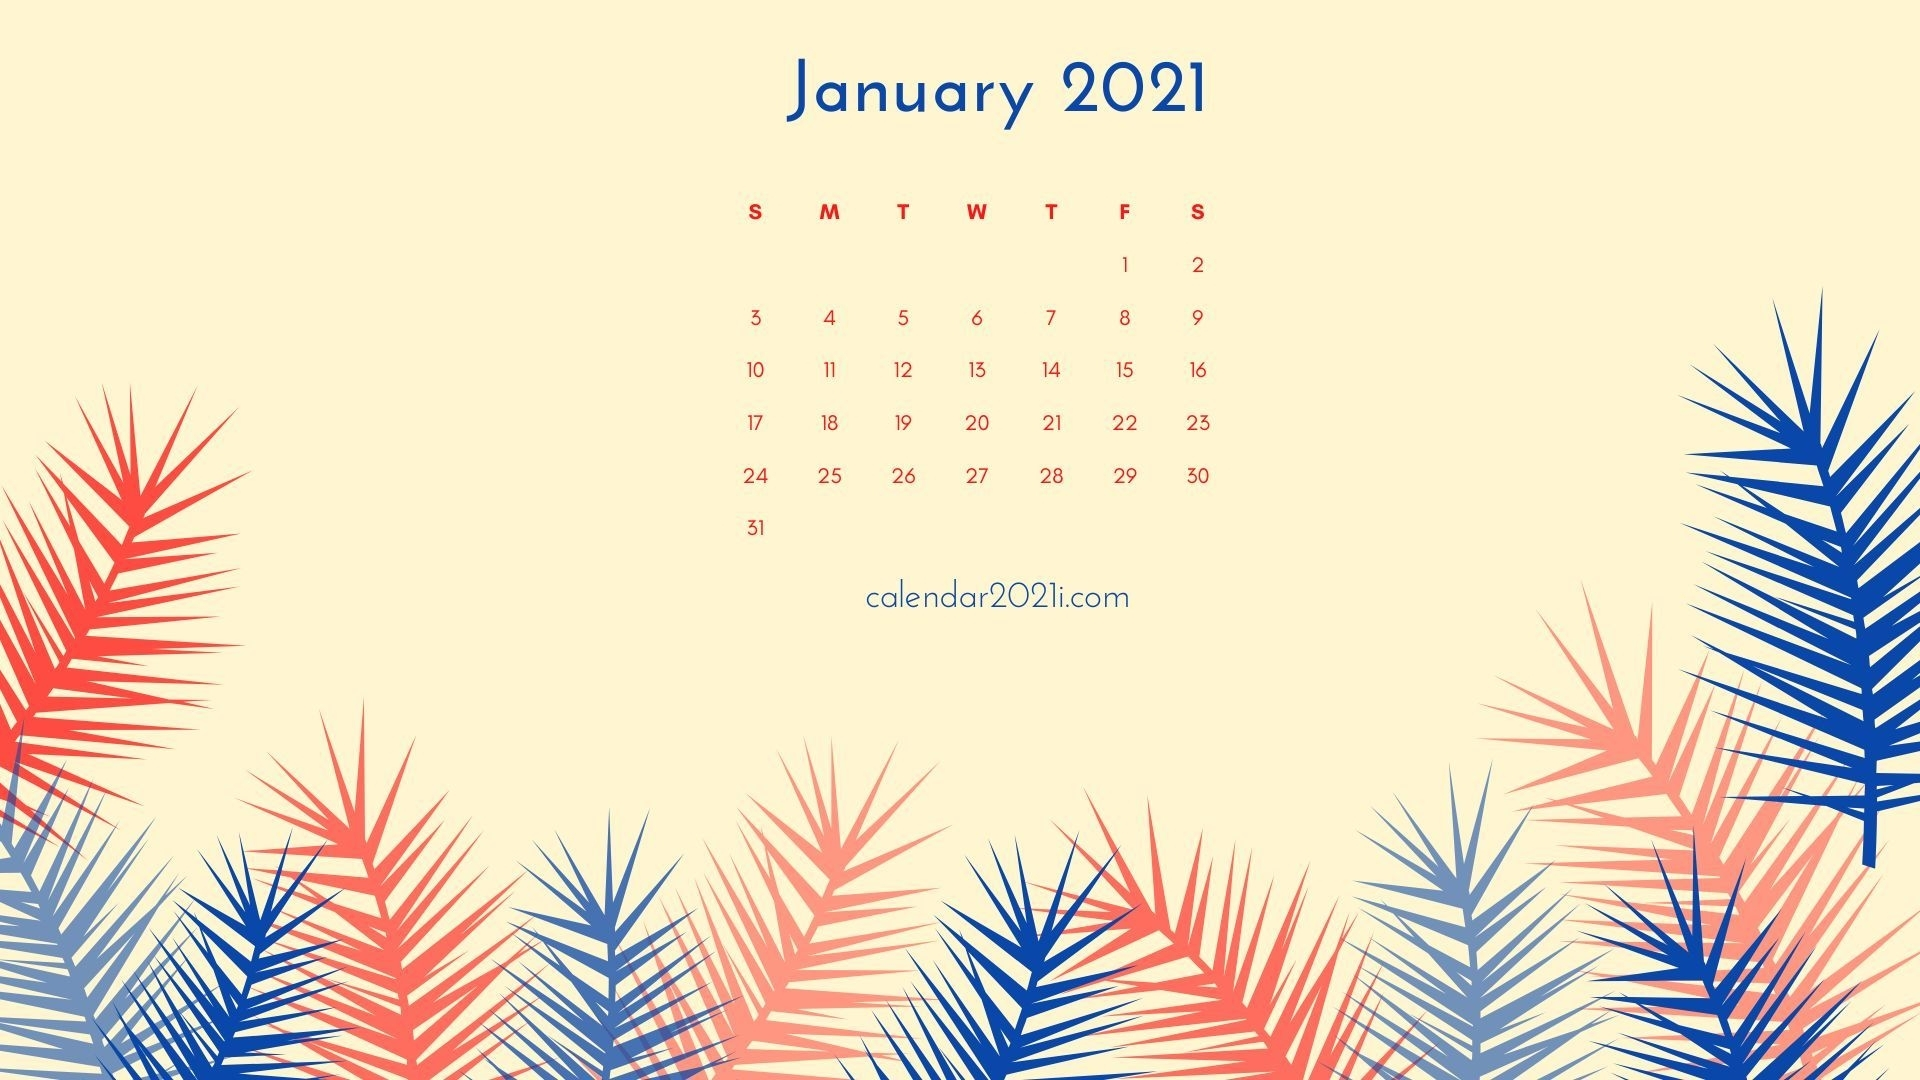 Take Where Can I Get 2021 Wallpaper Calendar